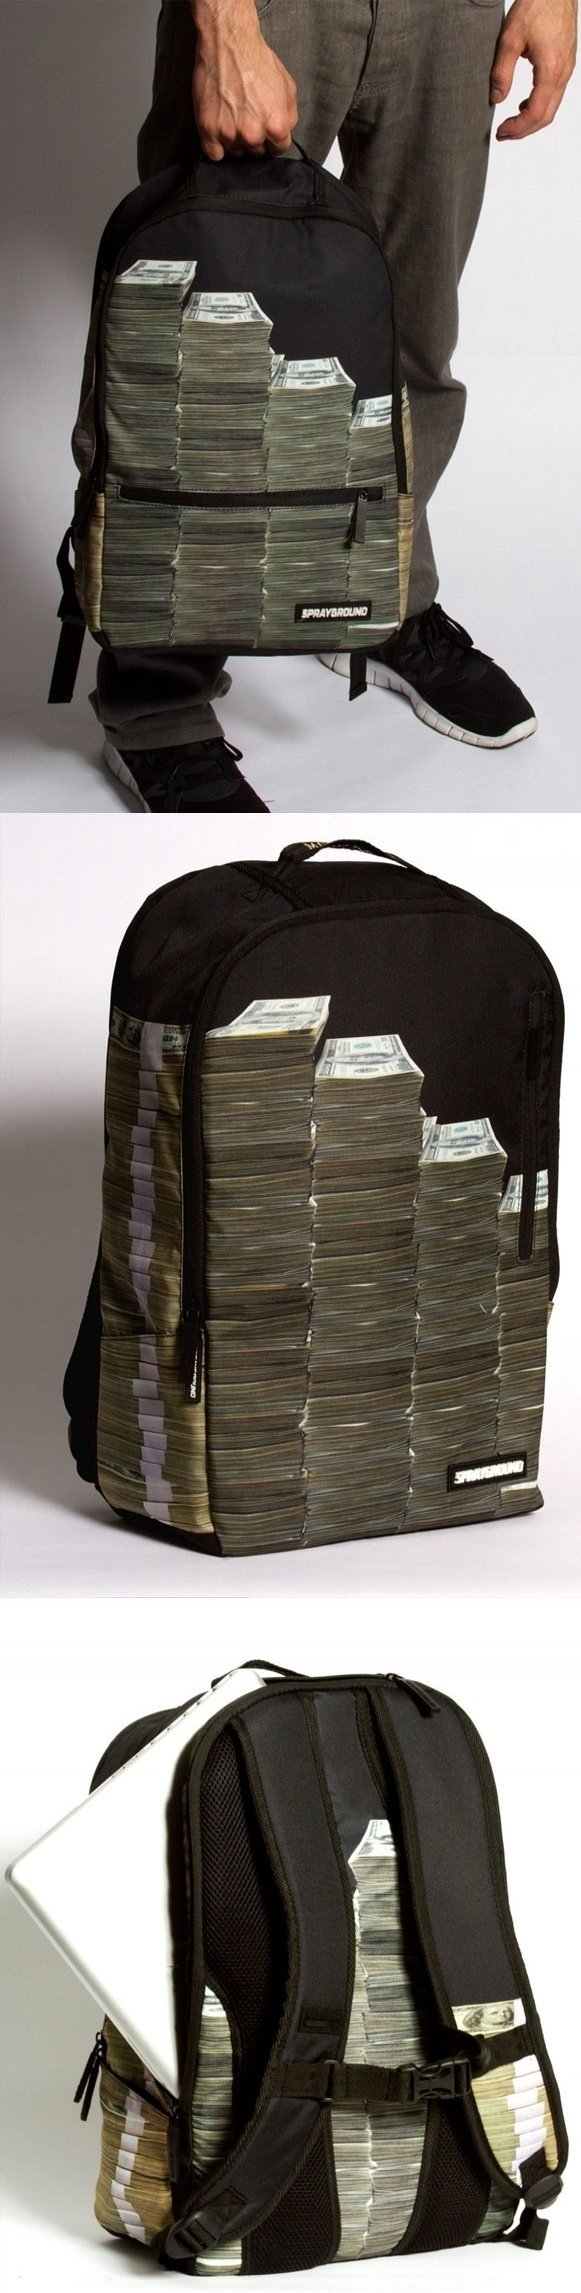 Money Stacks Bag